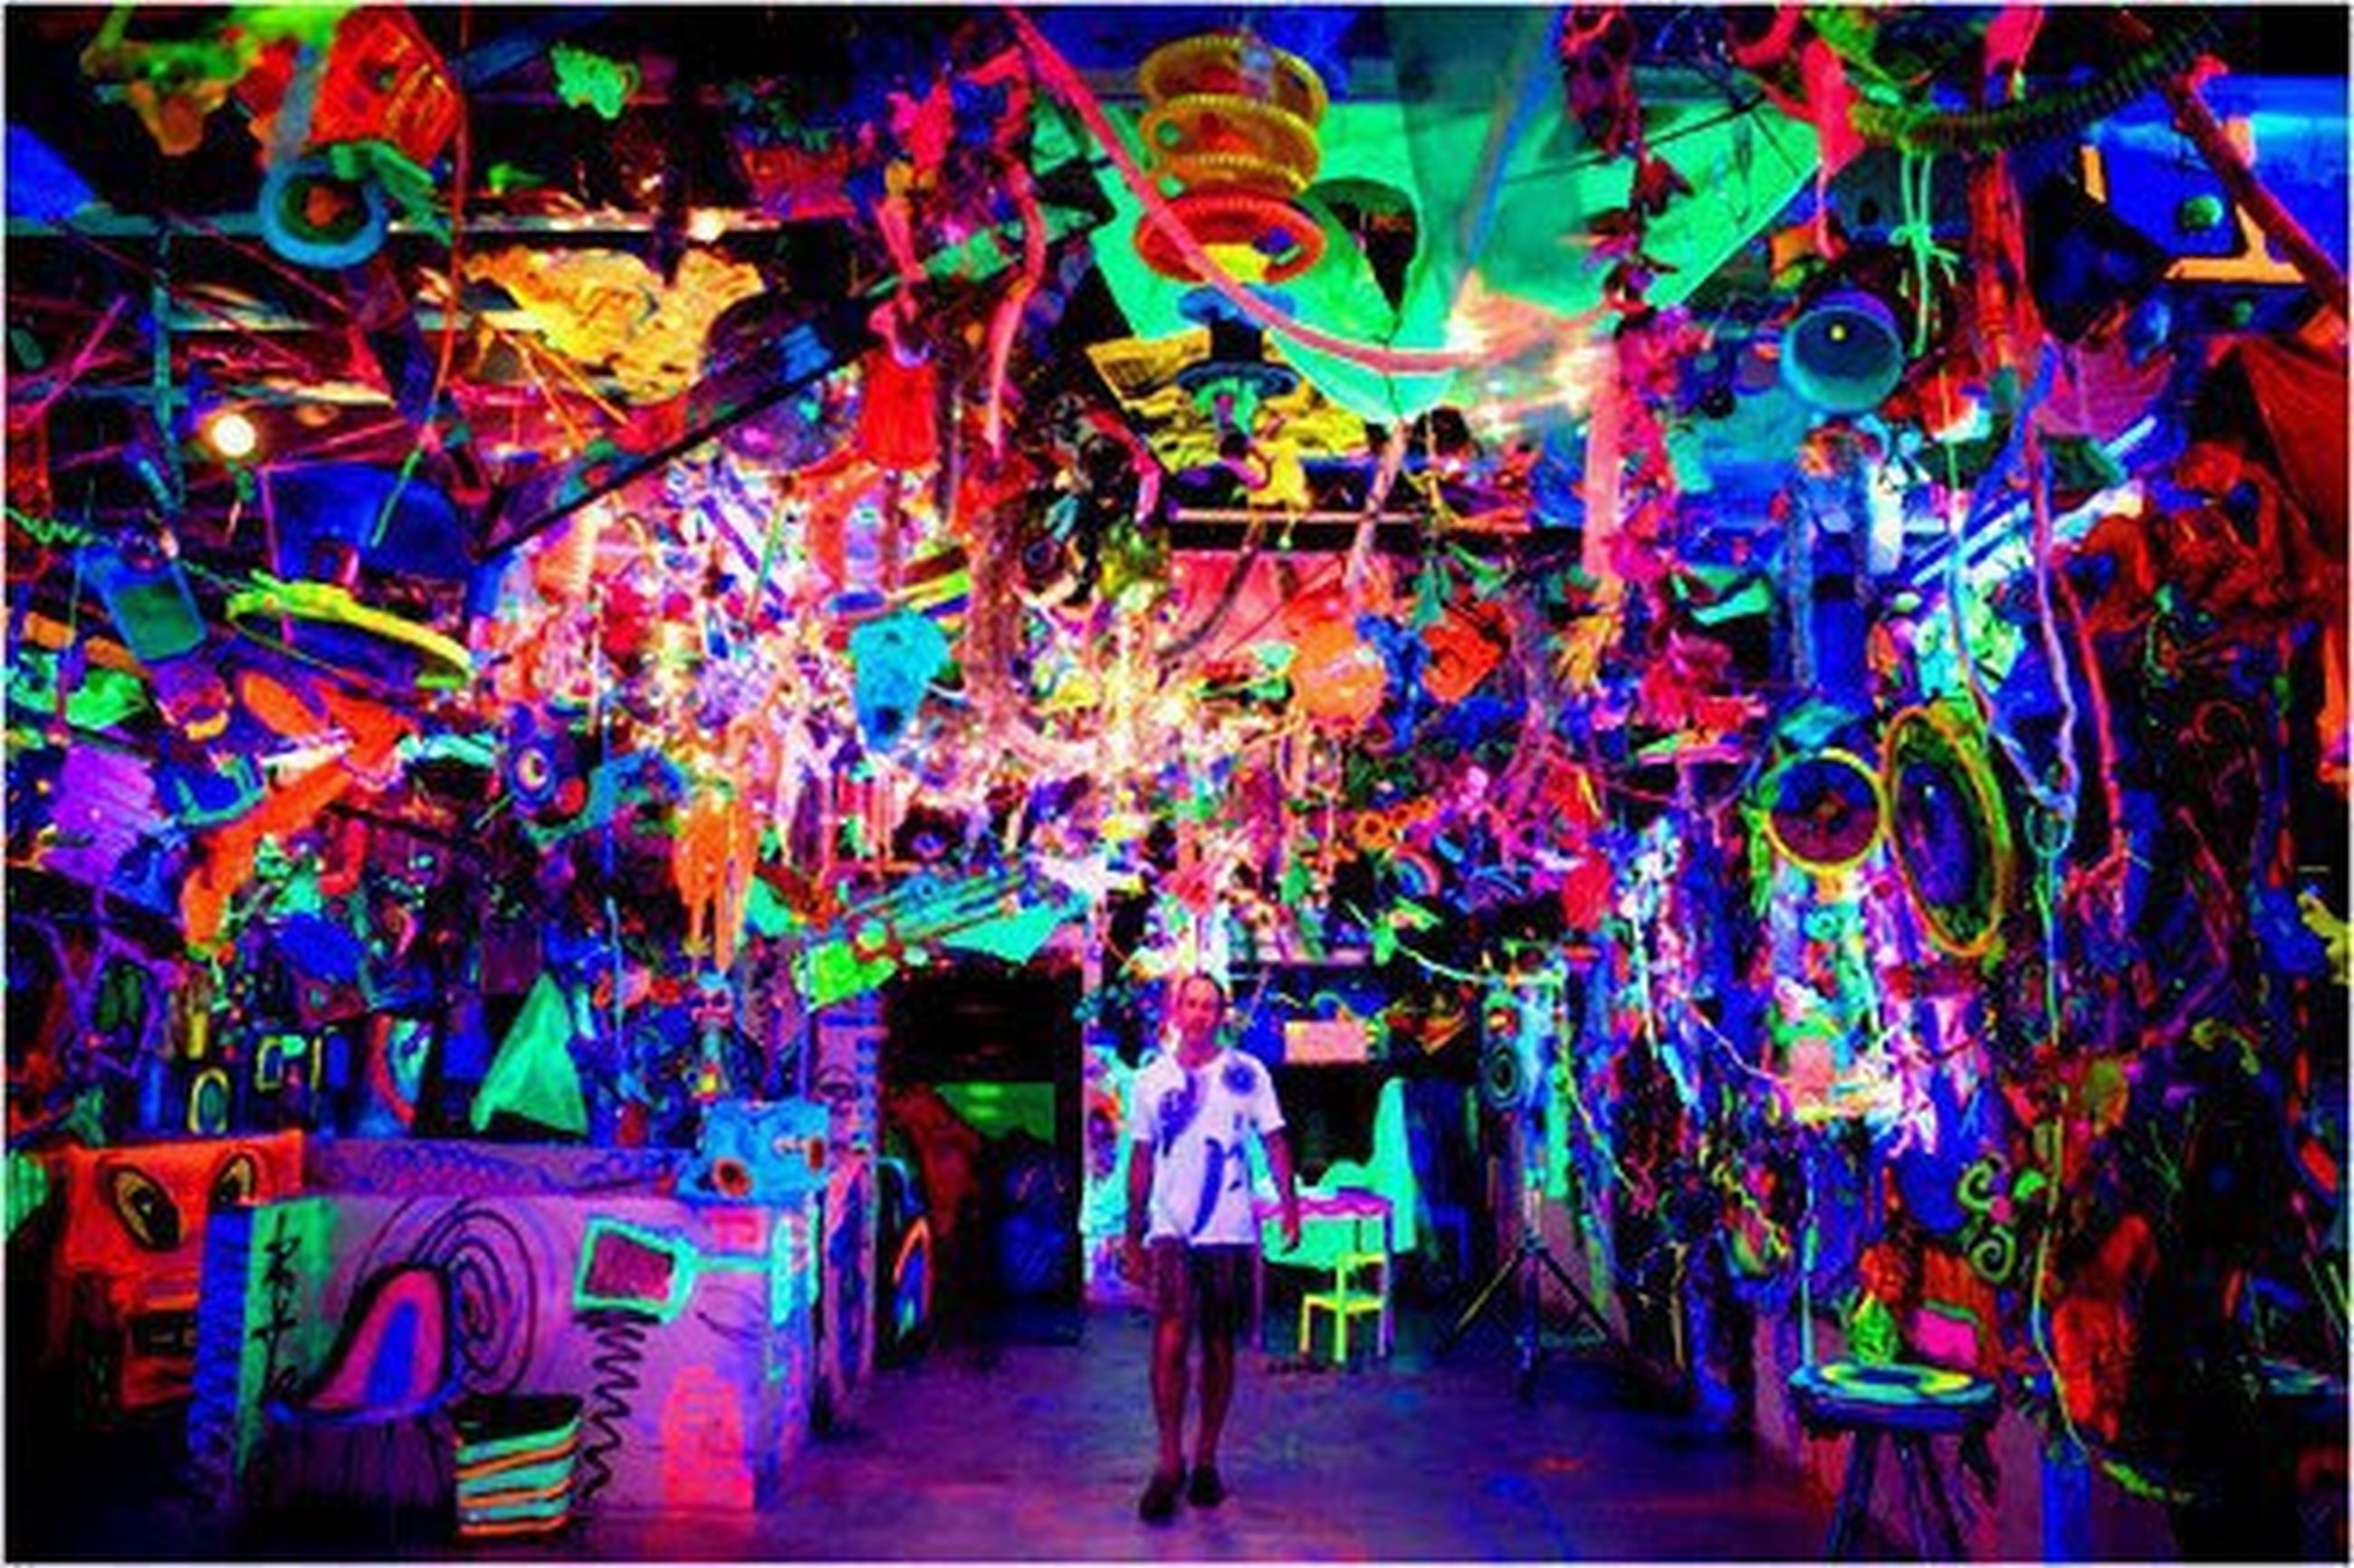 indoors, multi colored, art, illuminated, art and craft, creativity, cultures, celebration, night, tradition, leisure activity, lifestyles, arts culture and entertainment, men, decoration, person, hanging, religion, human representation